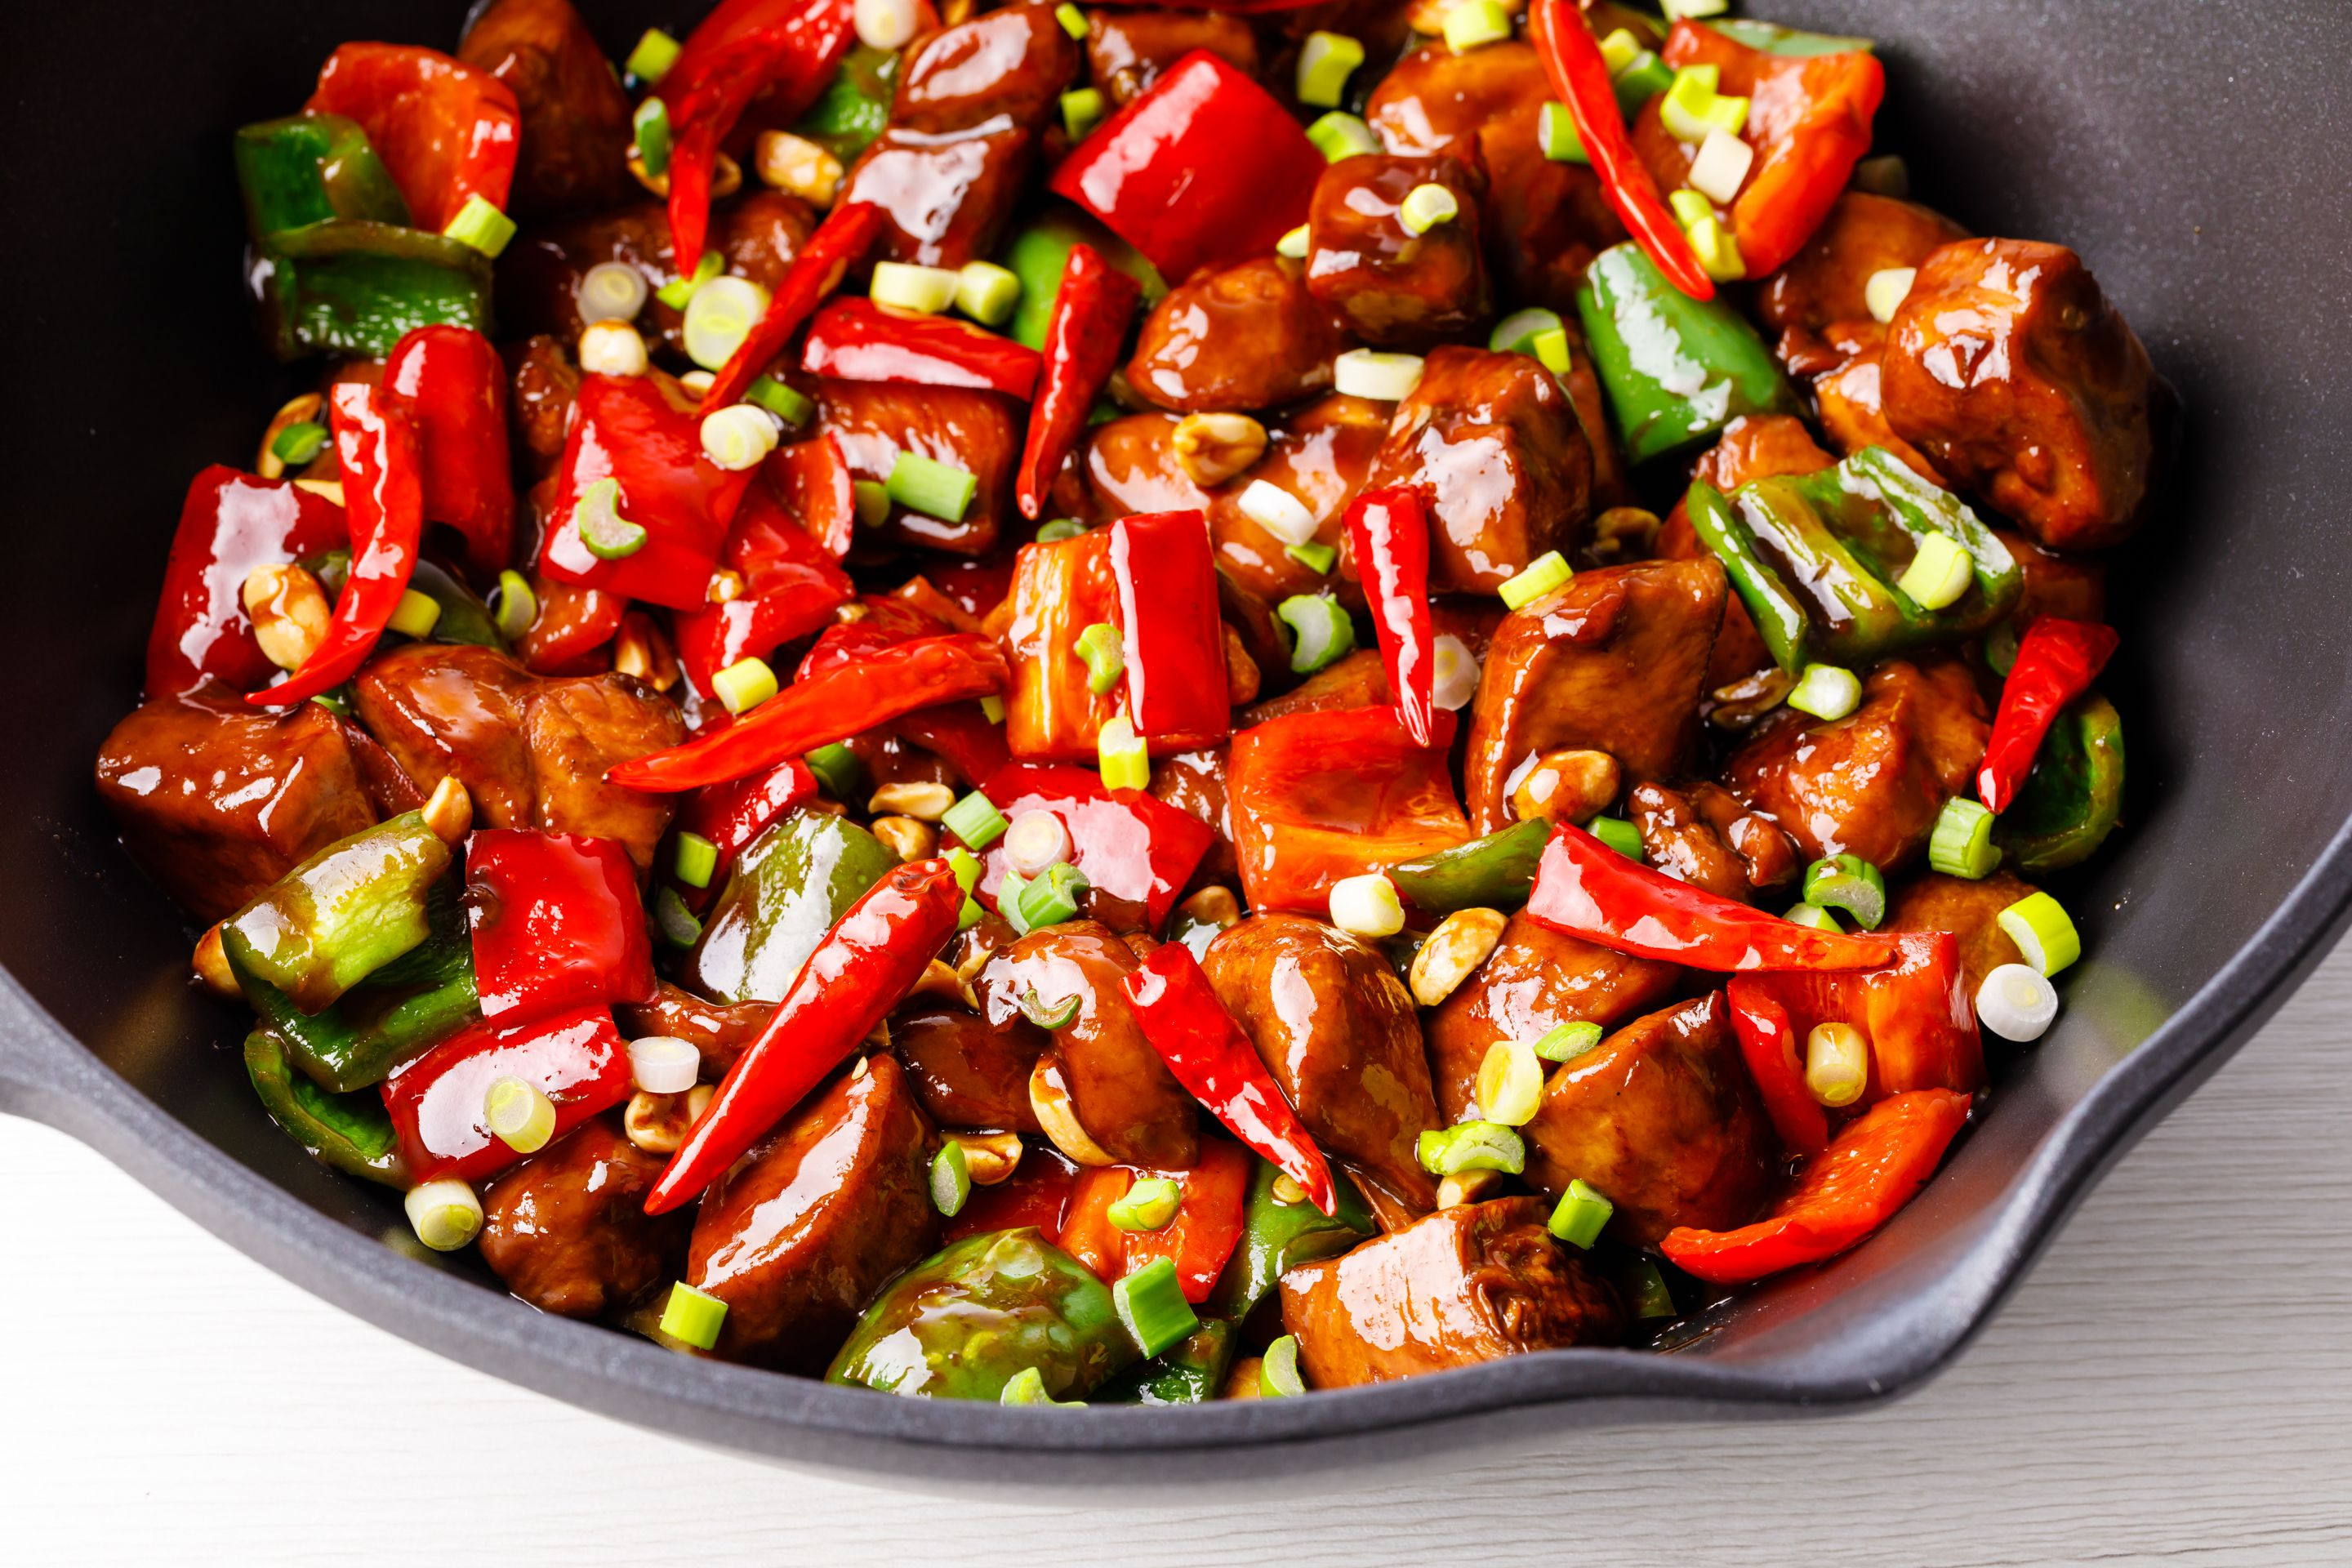 Why Eating Spicy Food Can Give You Diarrhea